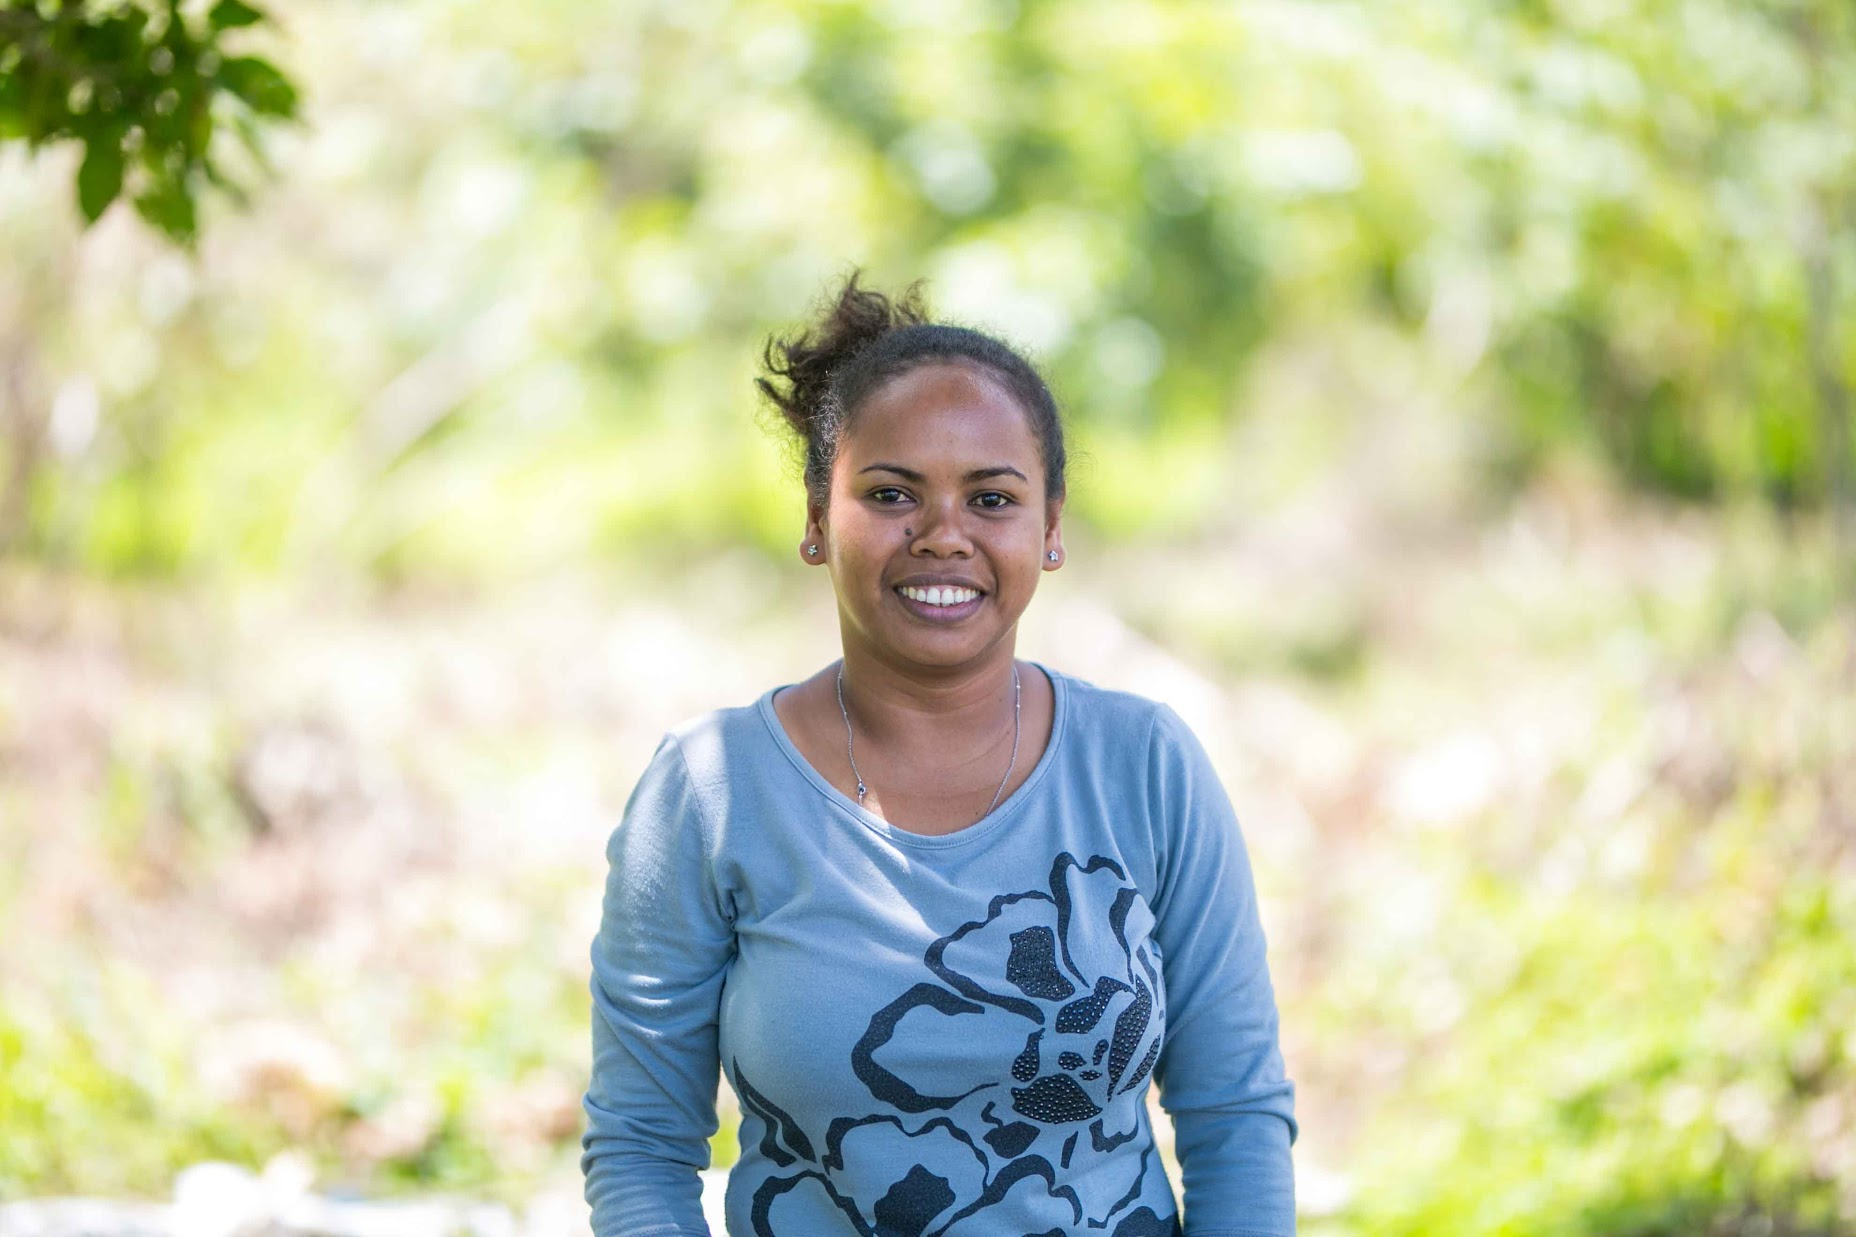 Ria is from the village of Dumagipo. She will graduate from Lual Junior College next spring with a certificate as an Assistant Teacher.  She hopes to be able to give back by working in the Agta elementary school in her home village.